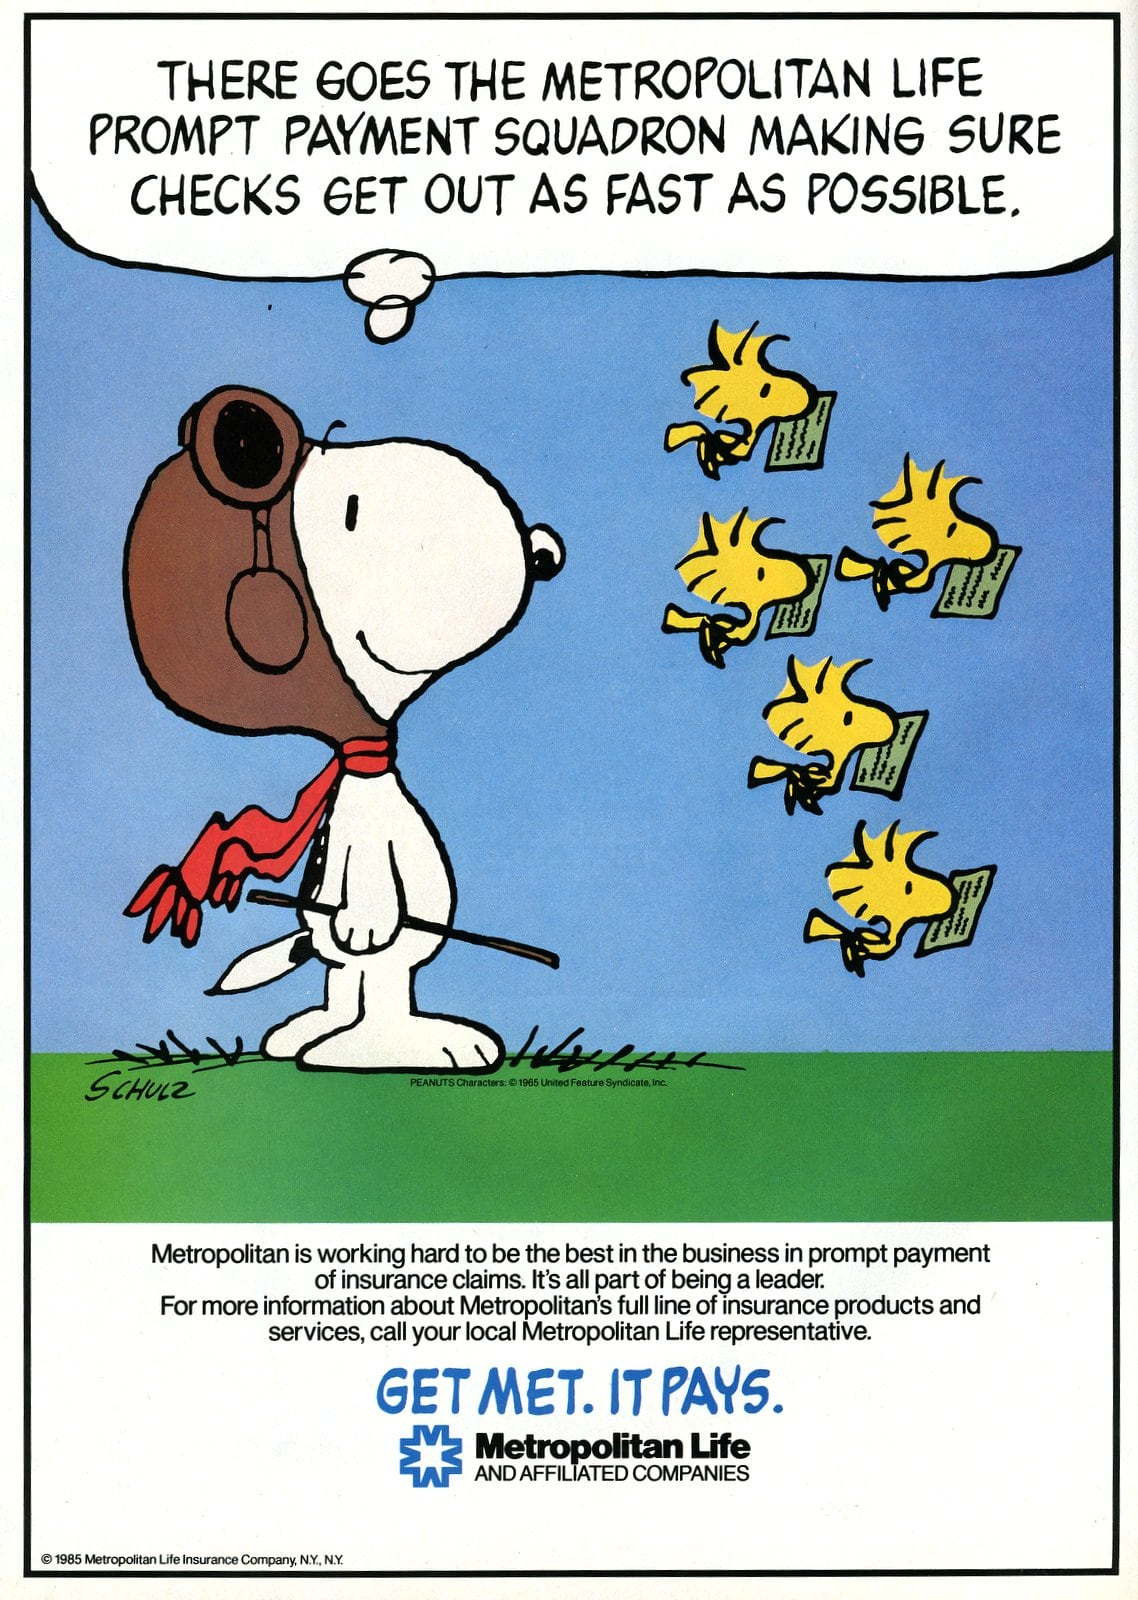 Snoopy and Woodstock - Peanuts for Met Life (1987)